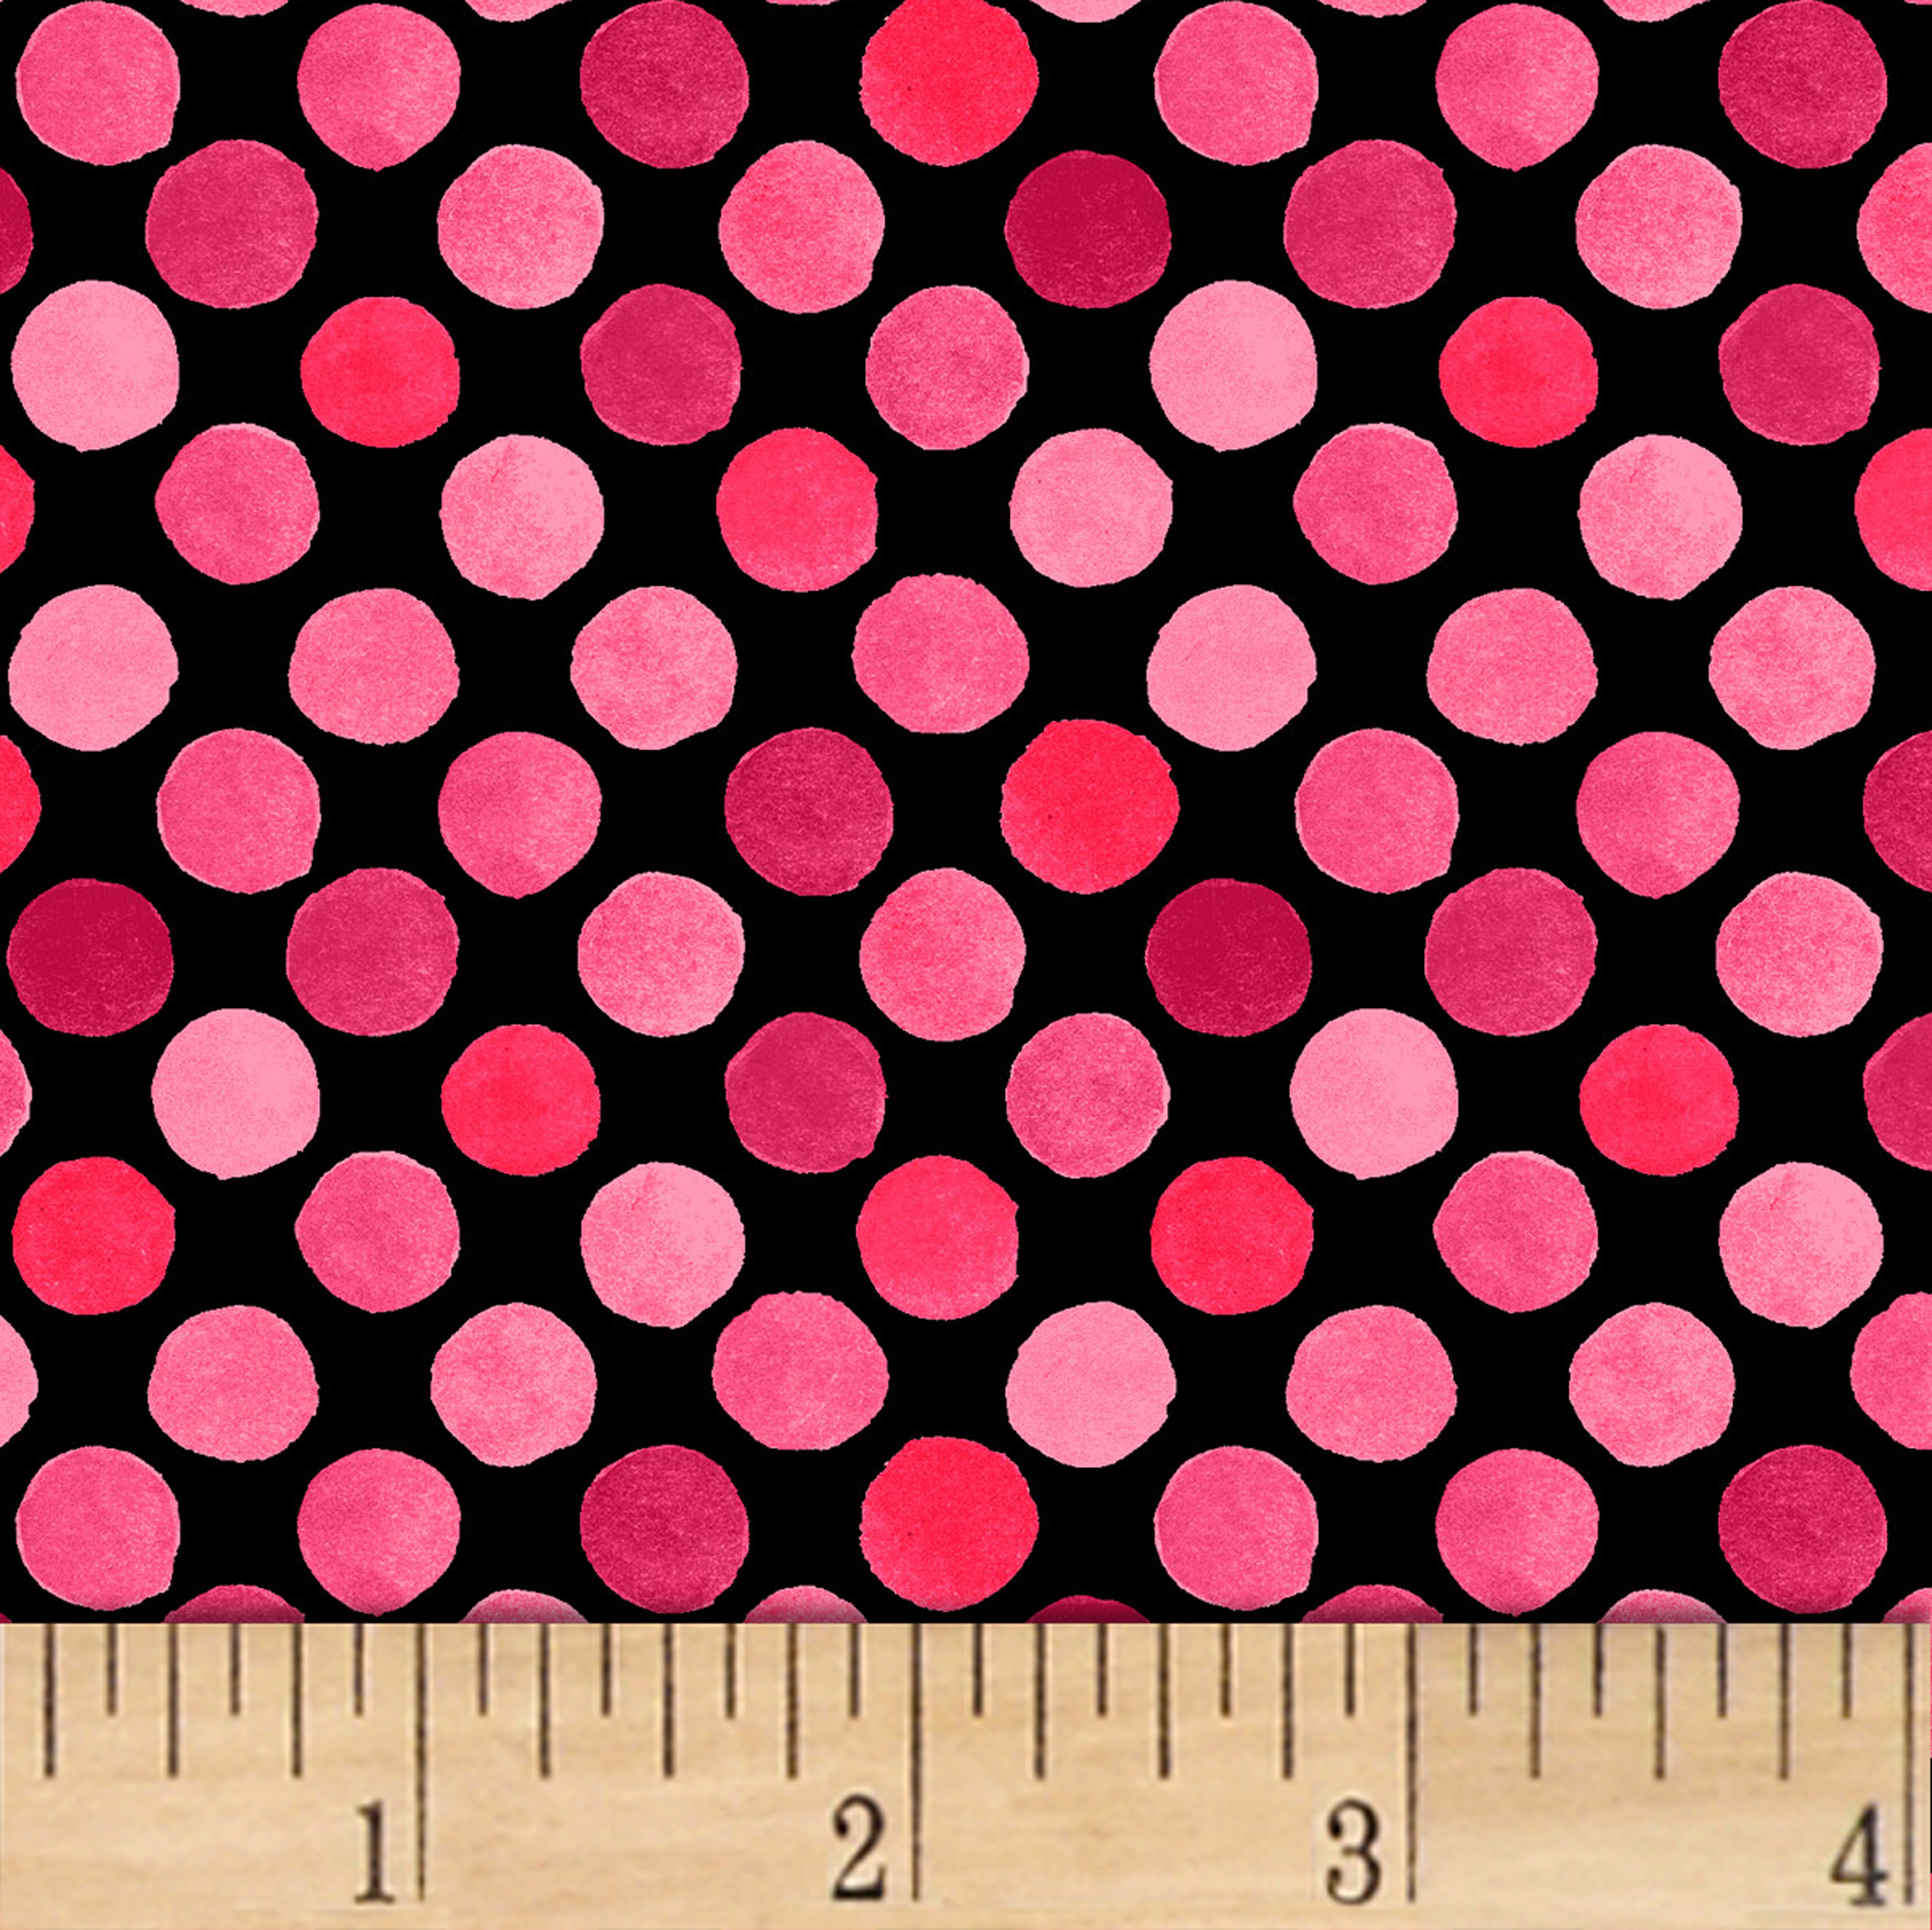 INOpets.com Anything for Pets Parents & Their Pets Lori's Art Garden Garden Dots Pink/Black Fabric